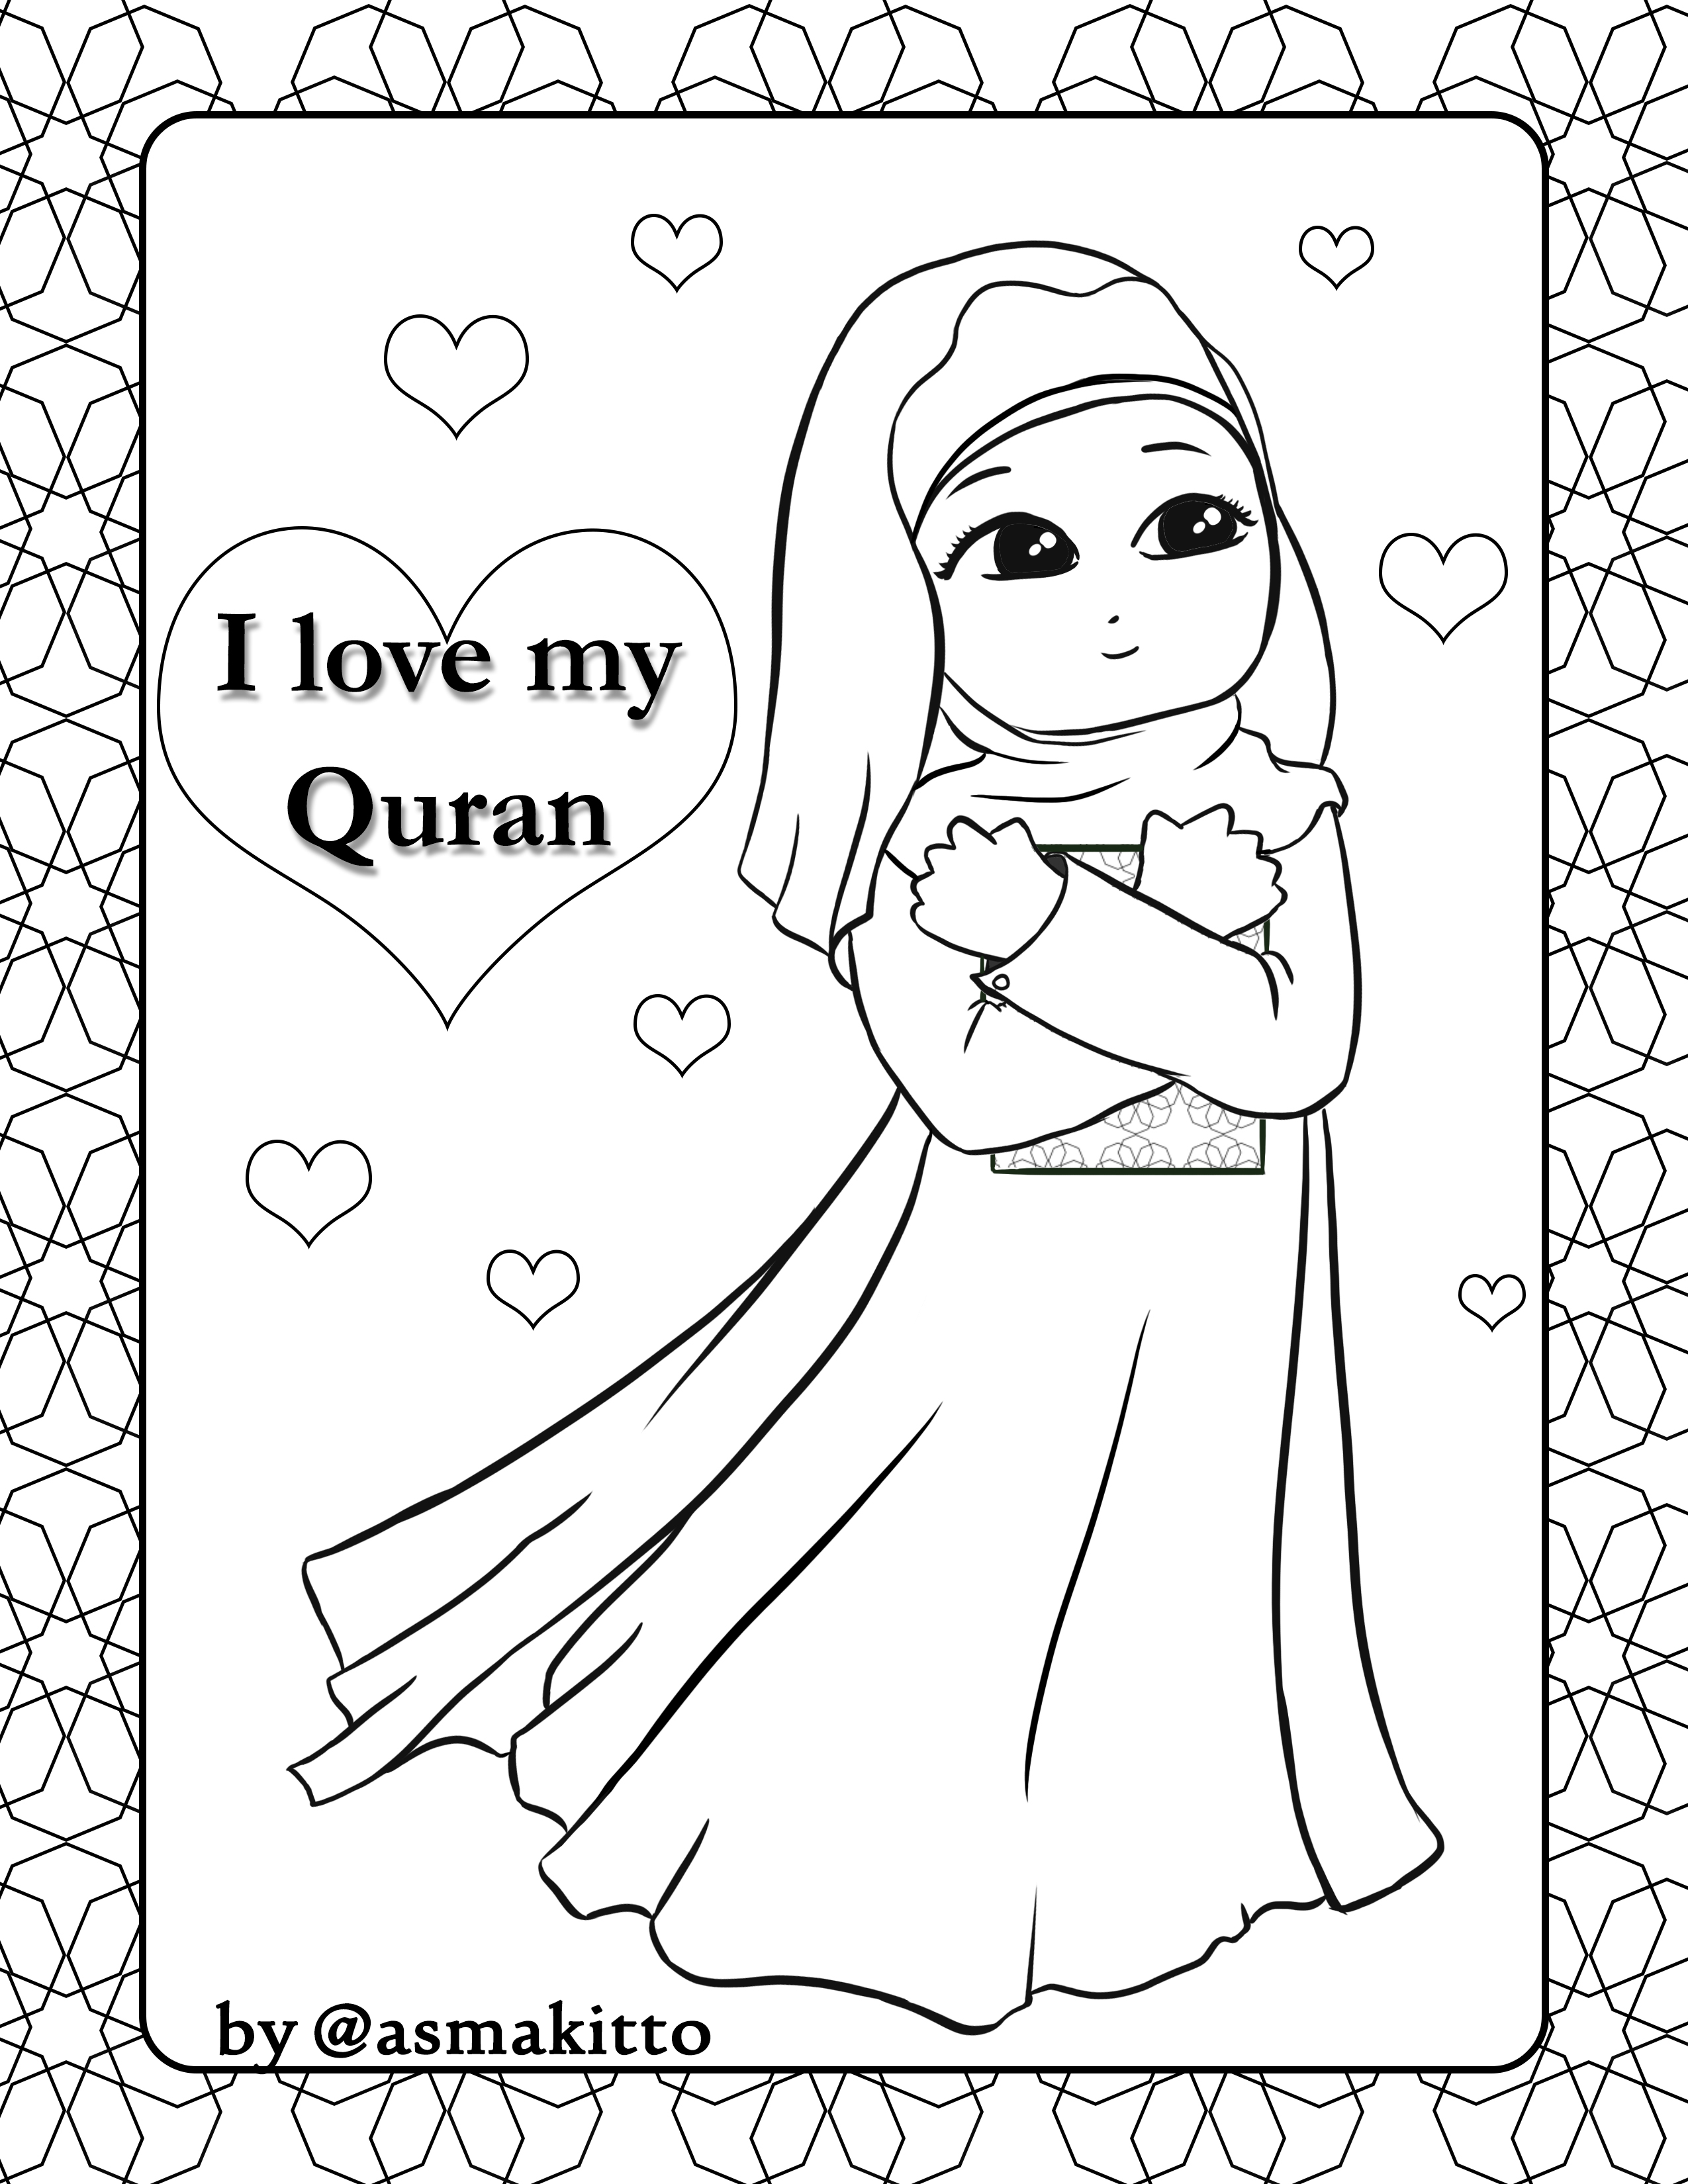 Free coloring page for little Muslim girl, I♥ my Quran